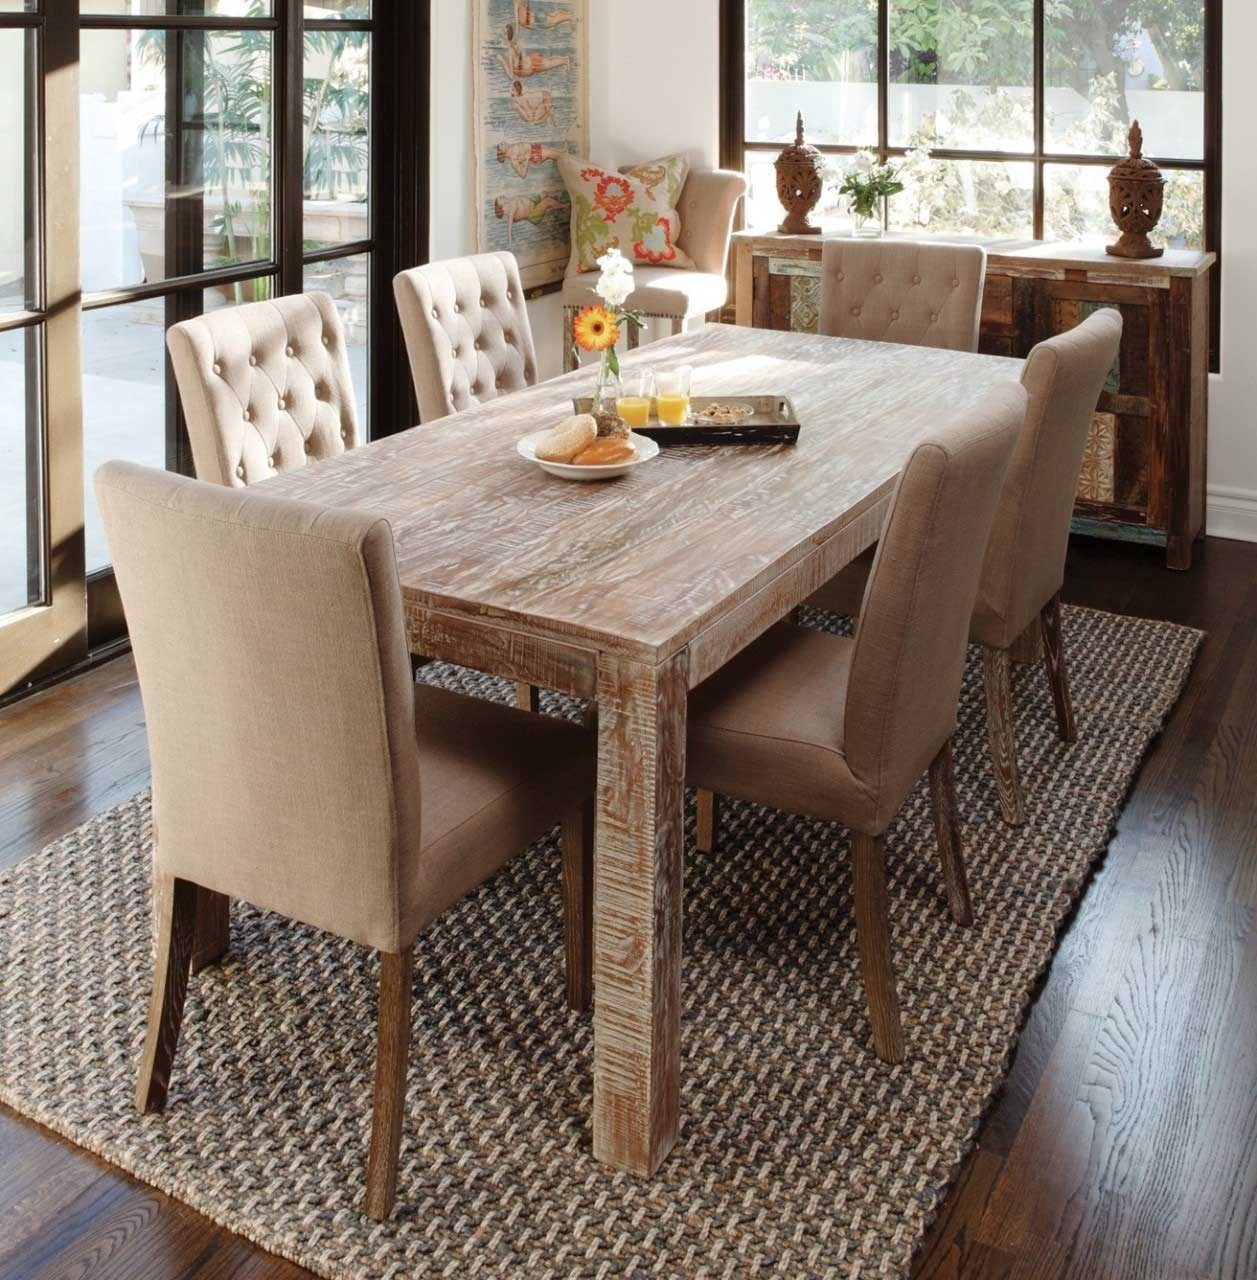 Rustic Dining Room With Wood Table And Elegant Chairs (Image 31 of 36)